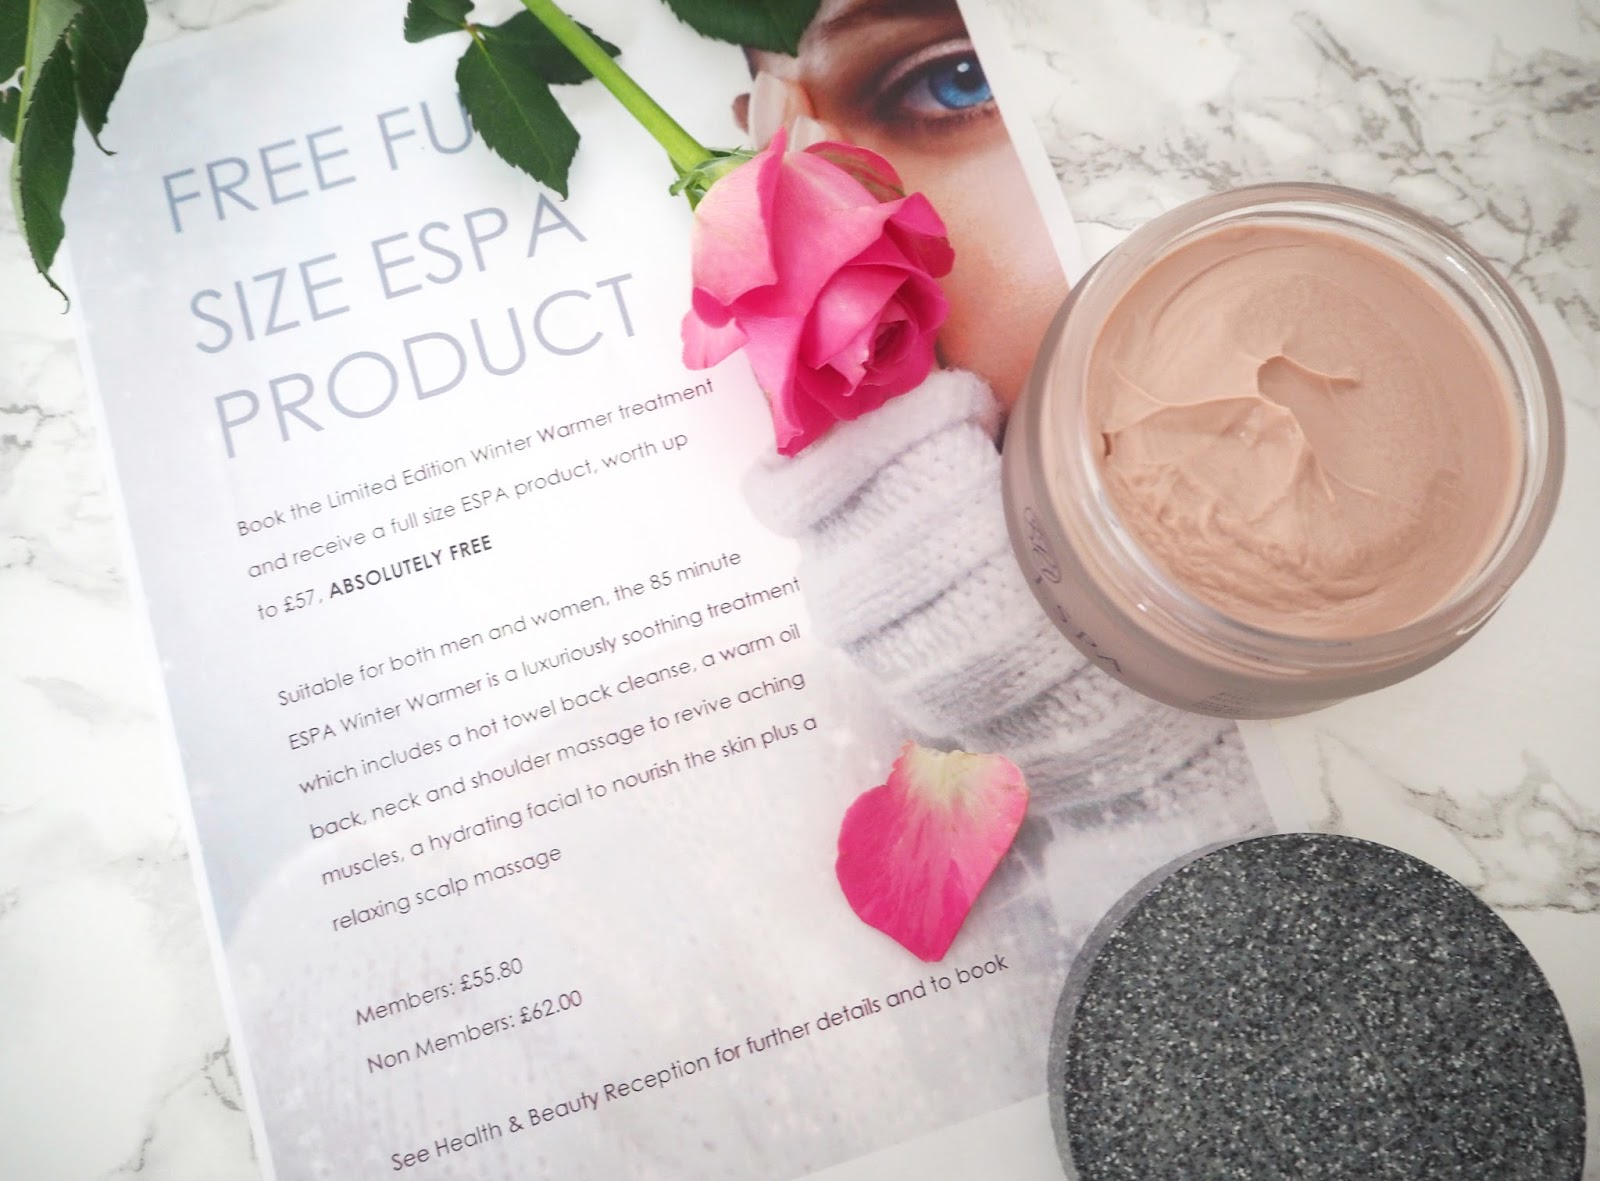 Espa Winter Warmer Spa Treatment, ESPA Skincare, Spa Treatment Review, Beauty Treatment, Espa Massage, Espa Facial, Espa Pink Hair & Scalp Mud, Virgin Active, Beauty Blogger, UK Blogger,